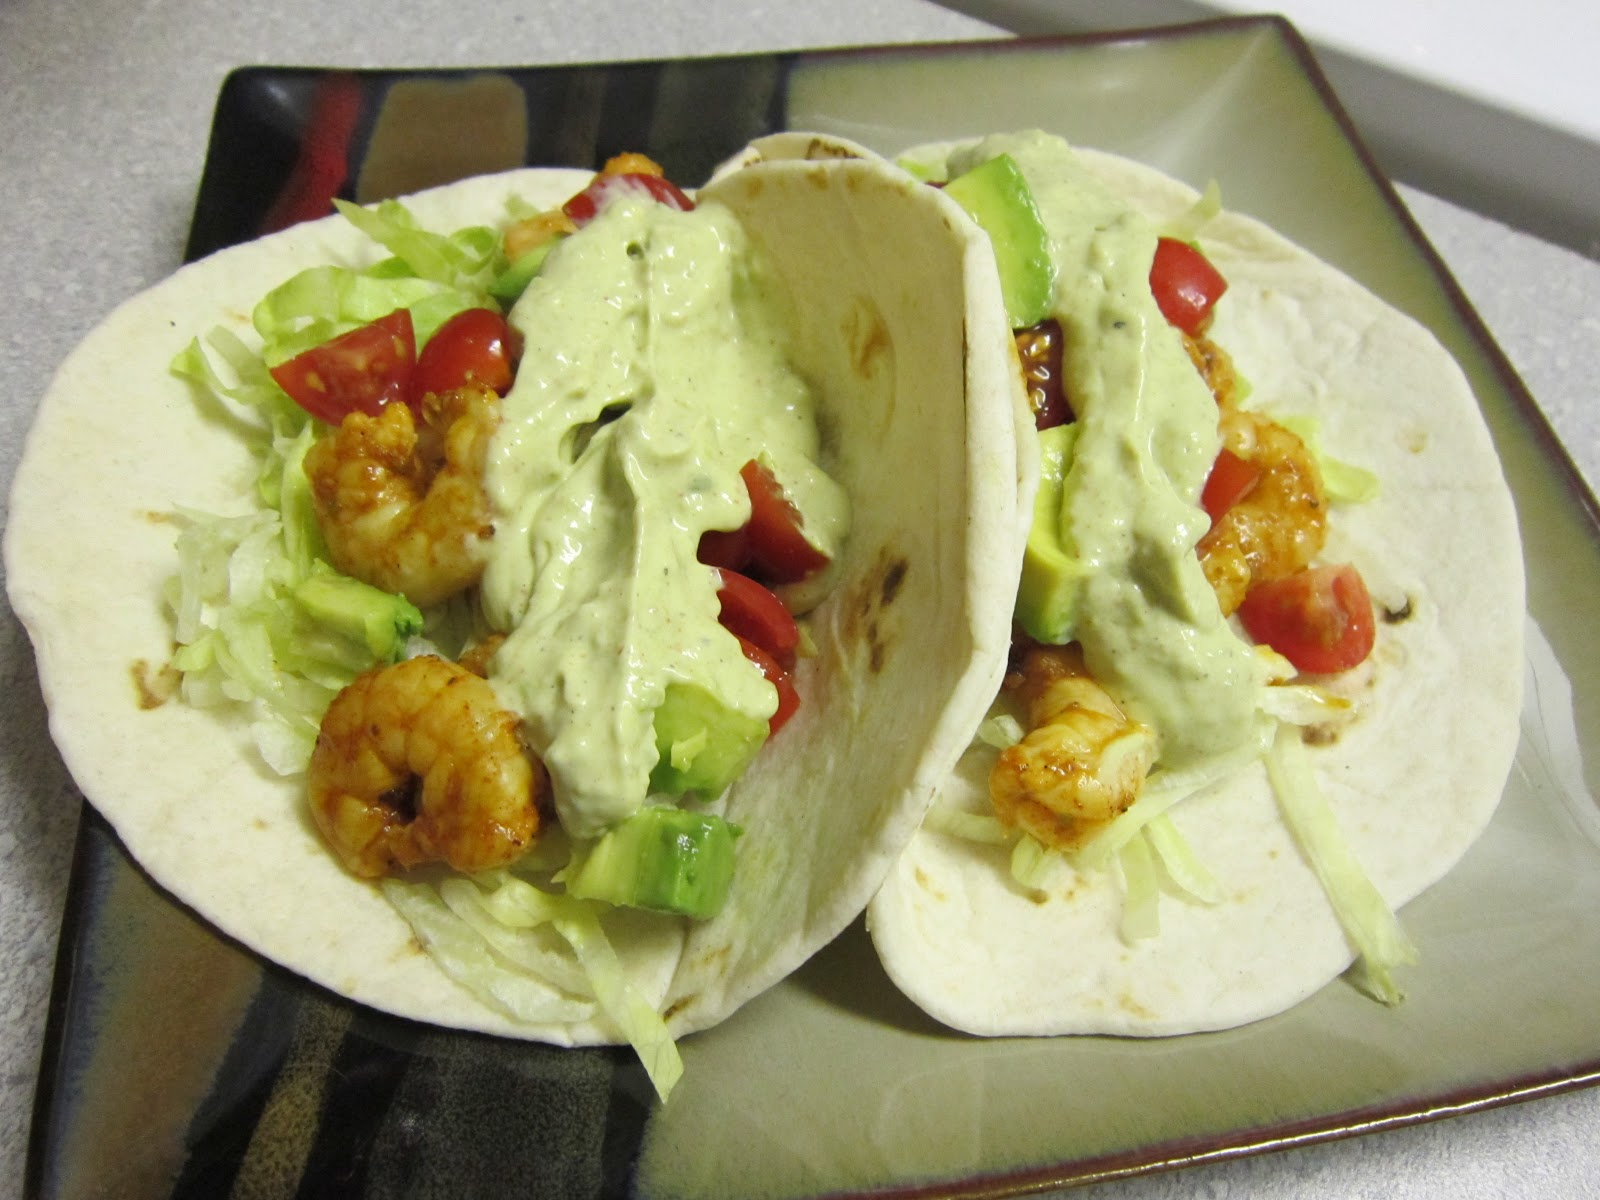 ... : Spicy Citrus Shrimp Tacos with Southwest Avocado Cream Sauce